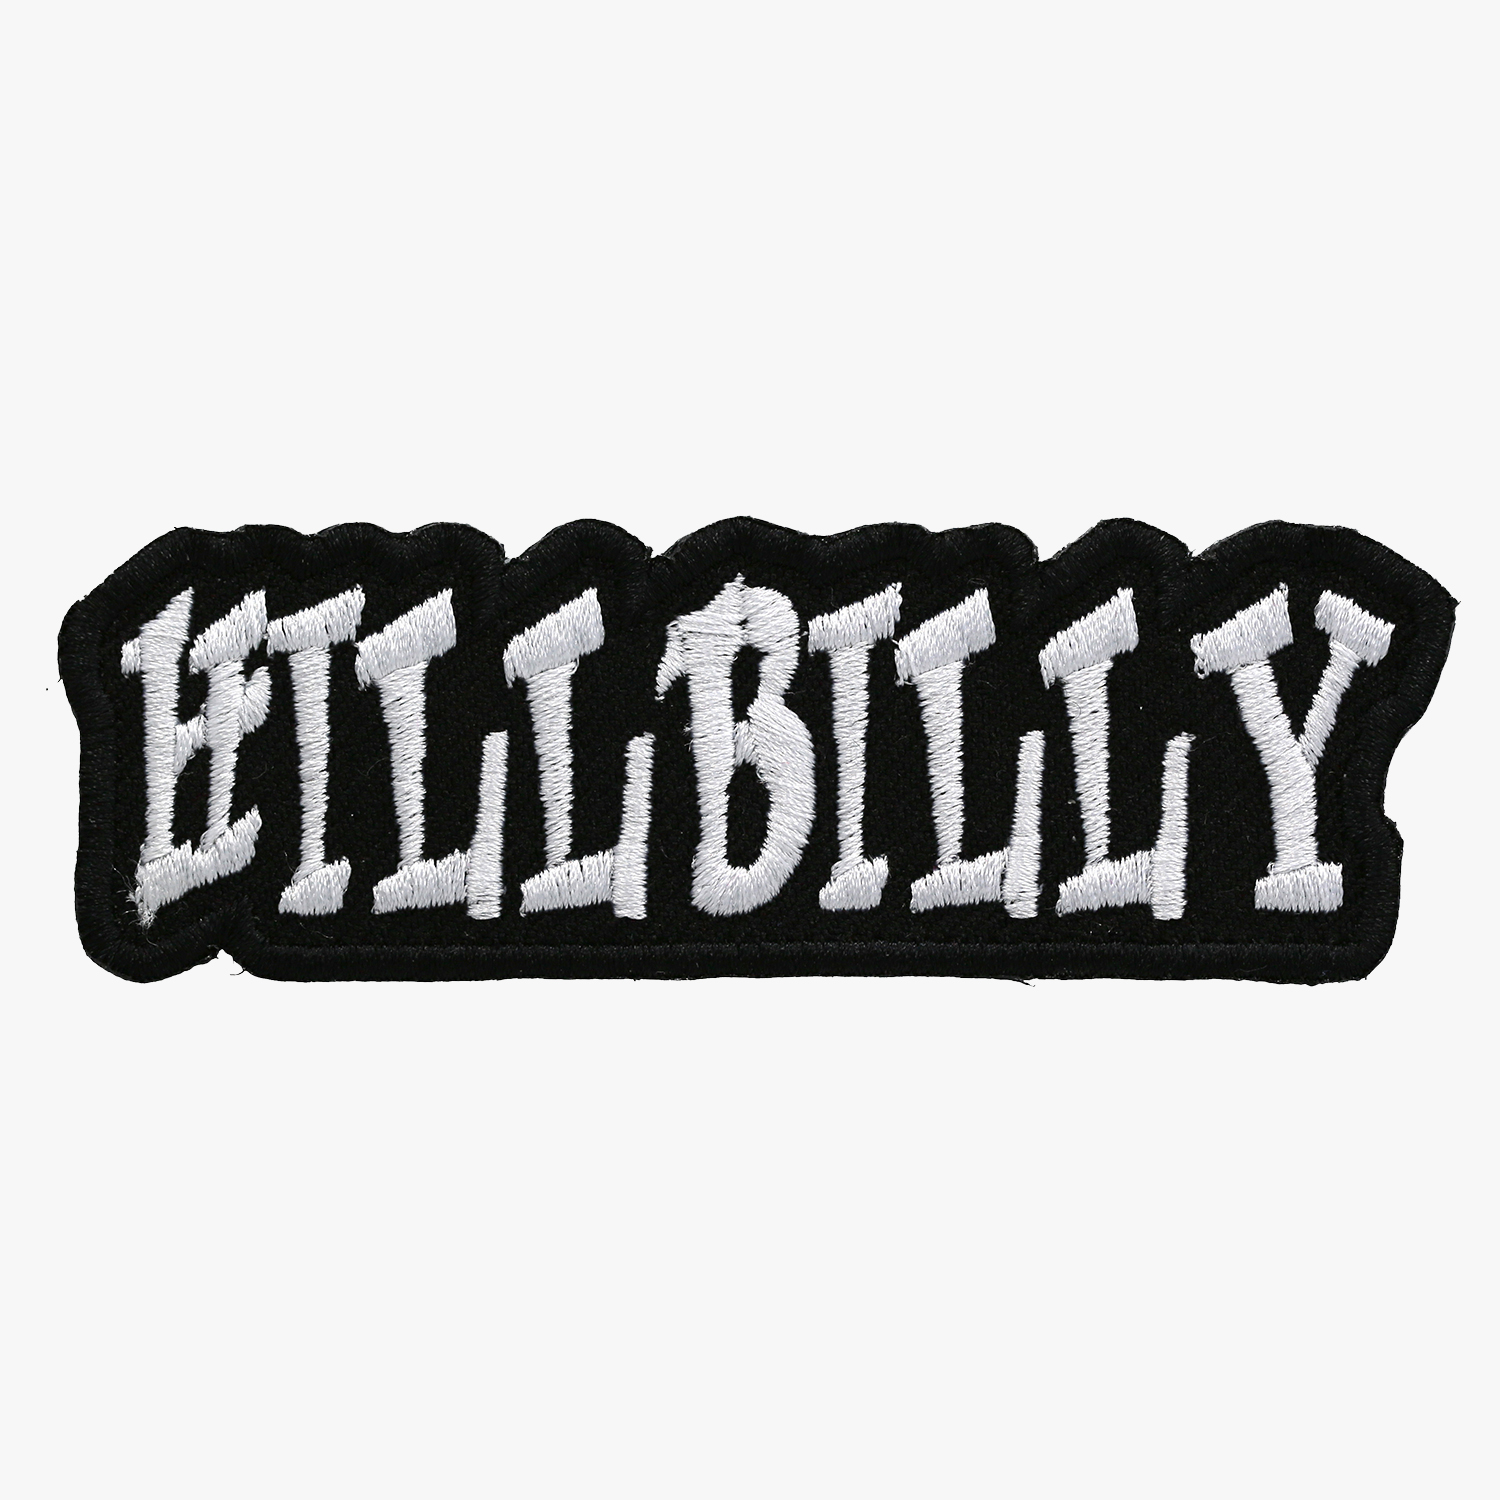 Hillbilly Motorcycle Club Embroidery Leather Cut Patch